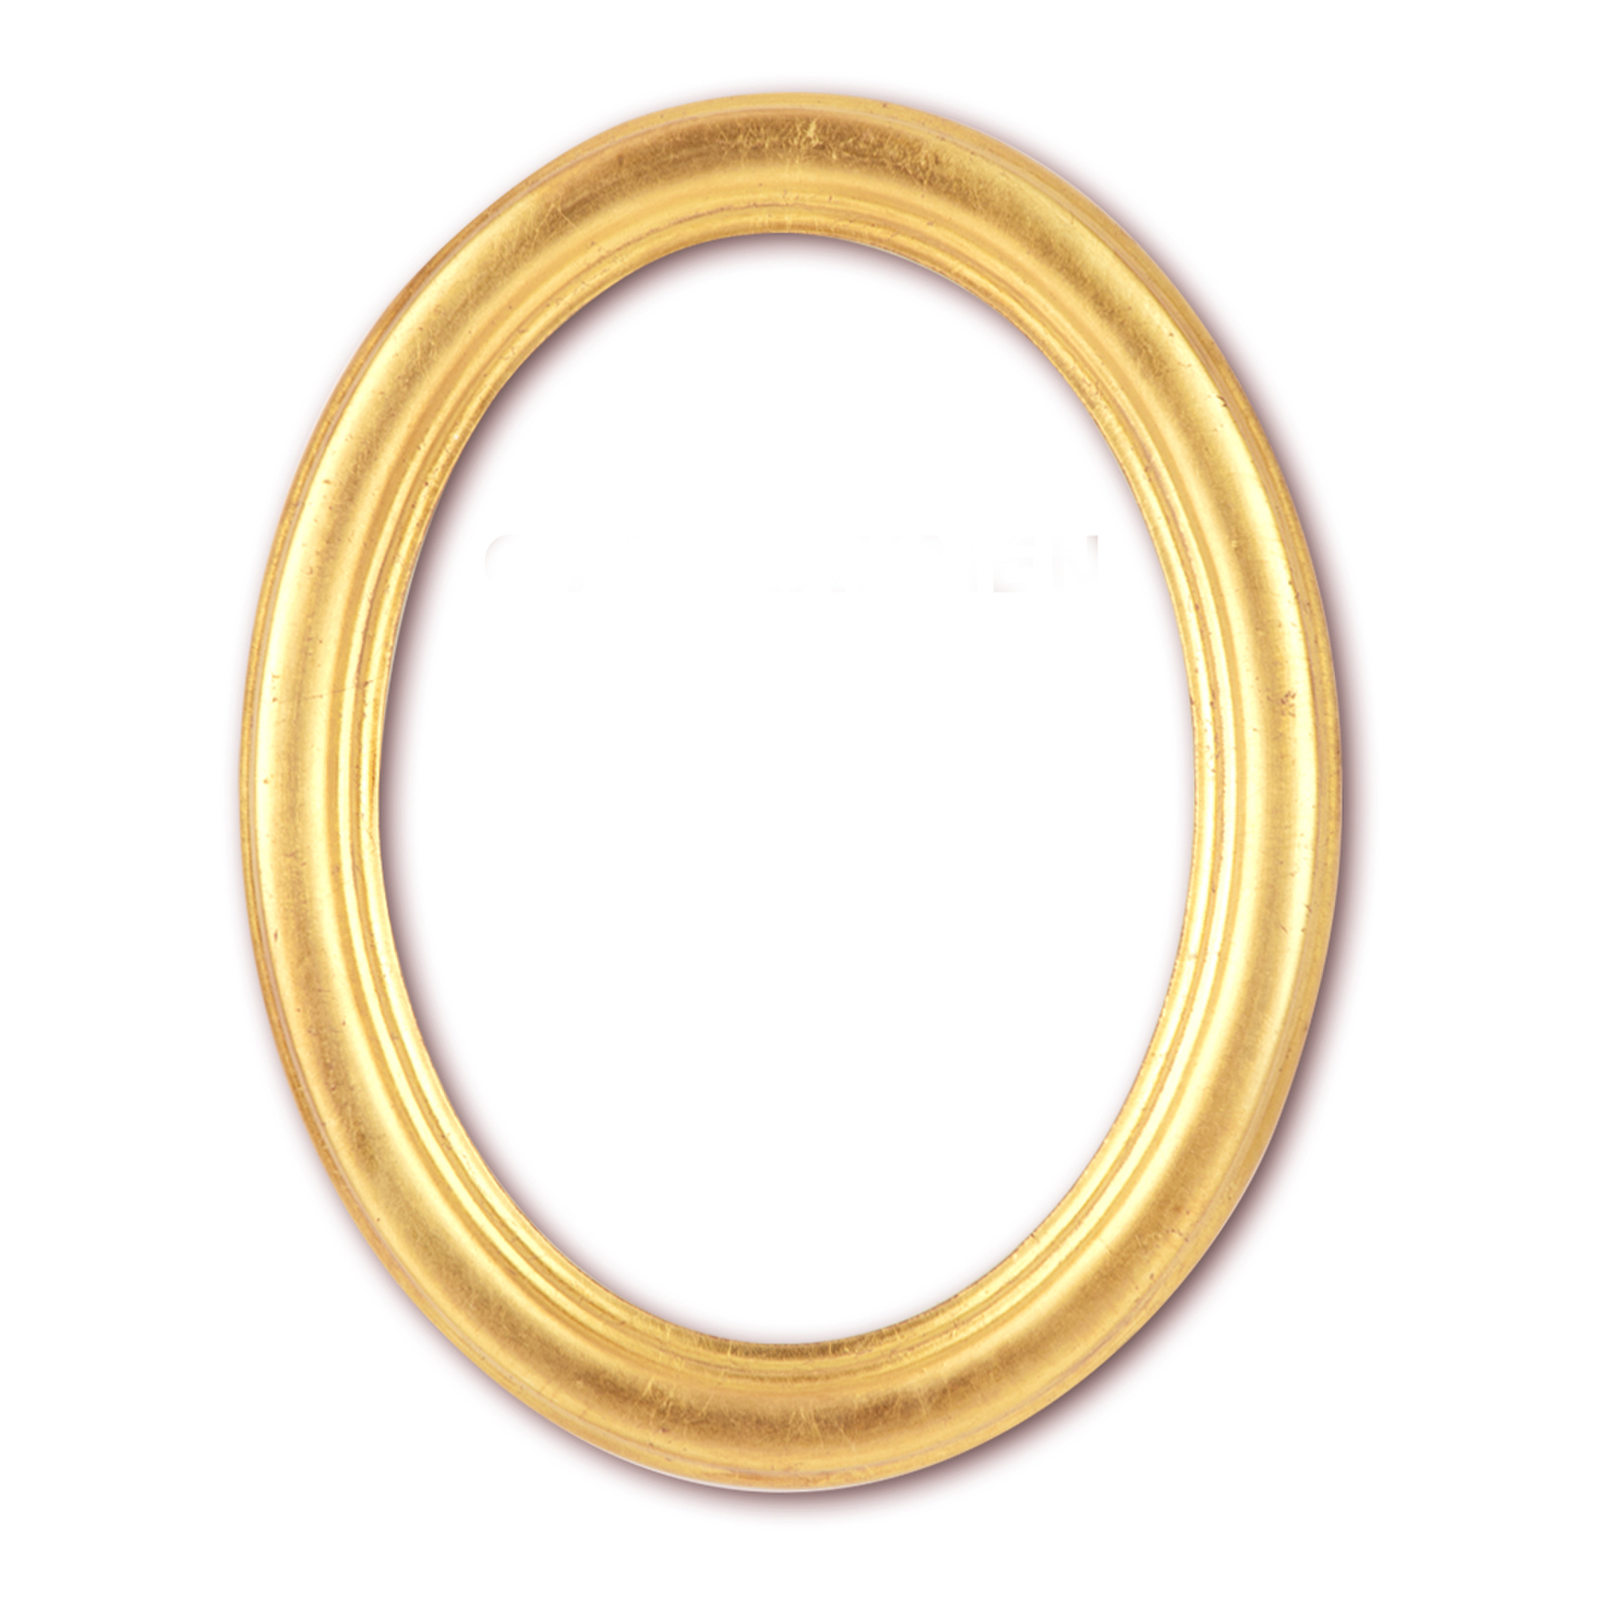 Oval Frame 9 X 13 Cm up to 50 X 70 Cm With Glass and Rear Panel Gold ...